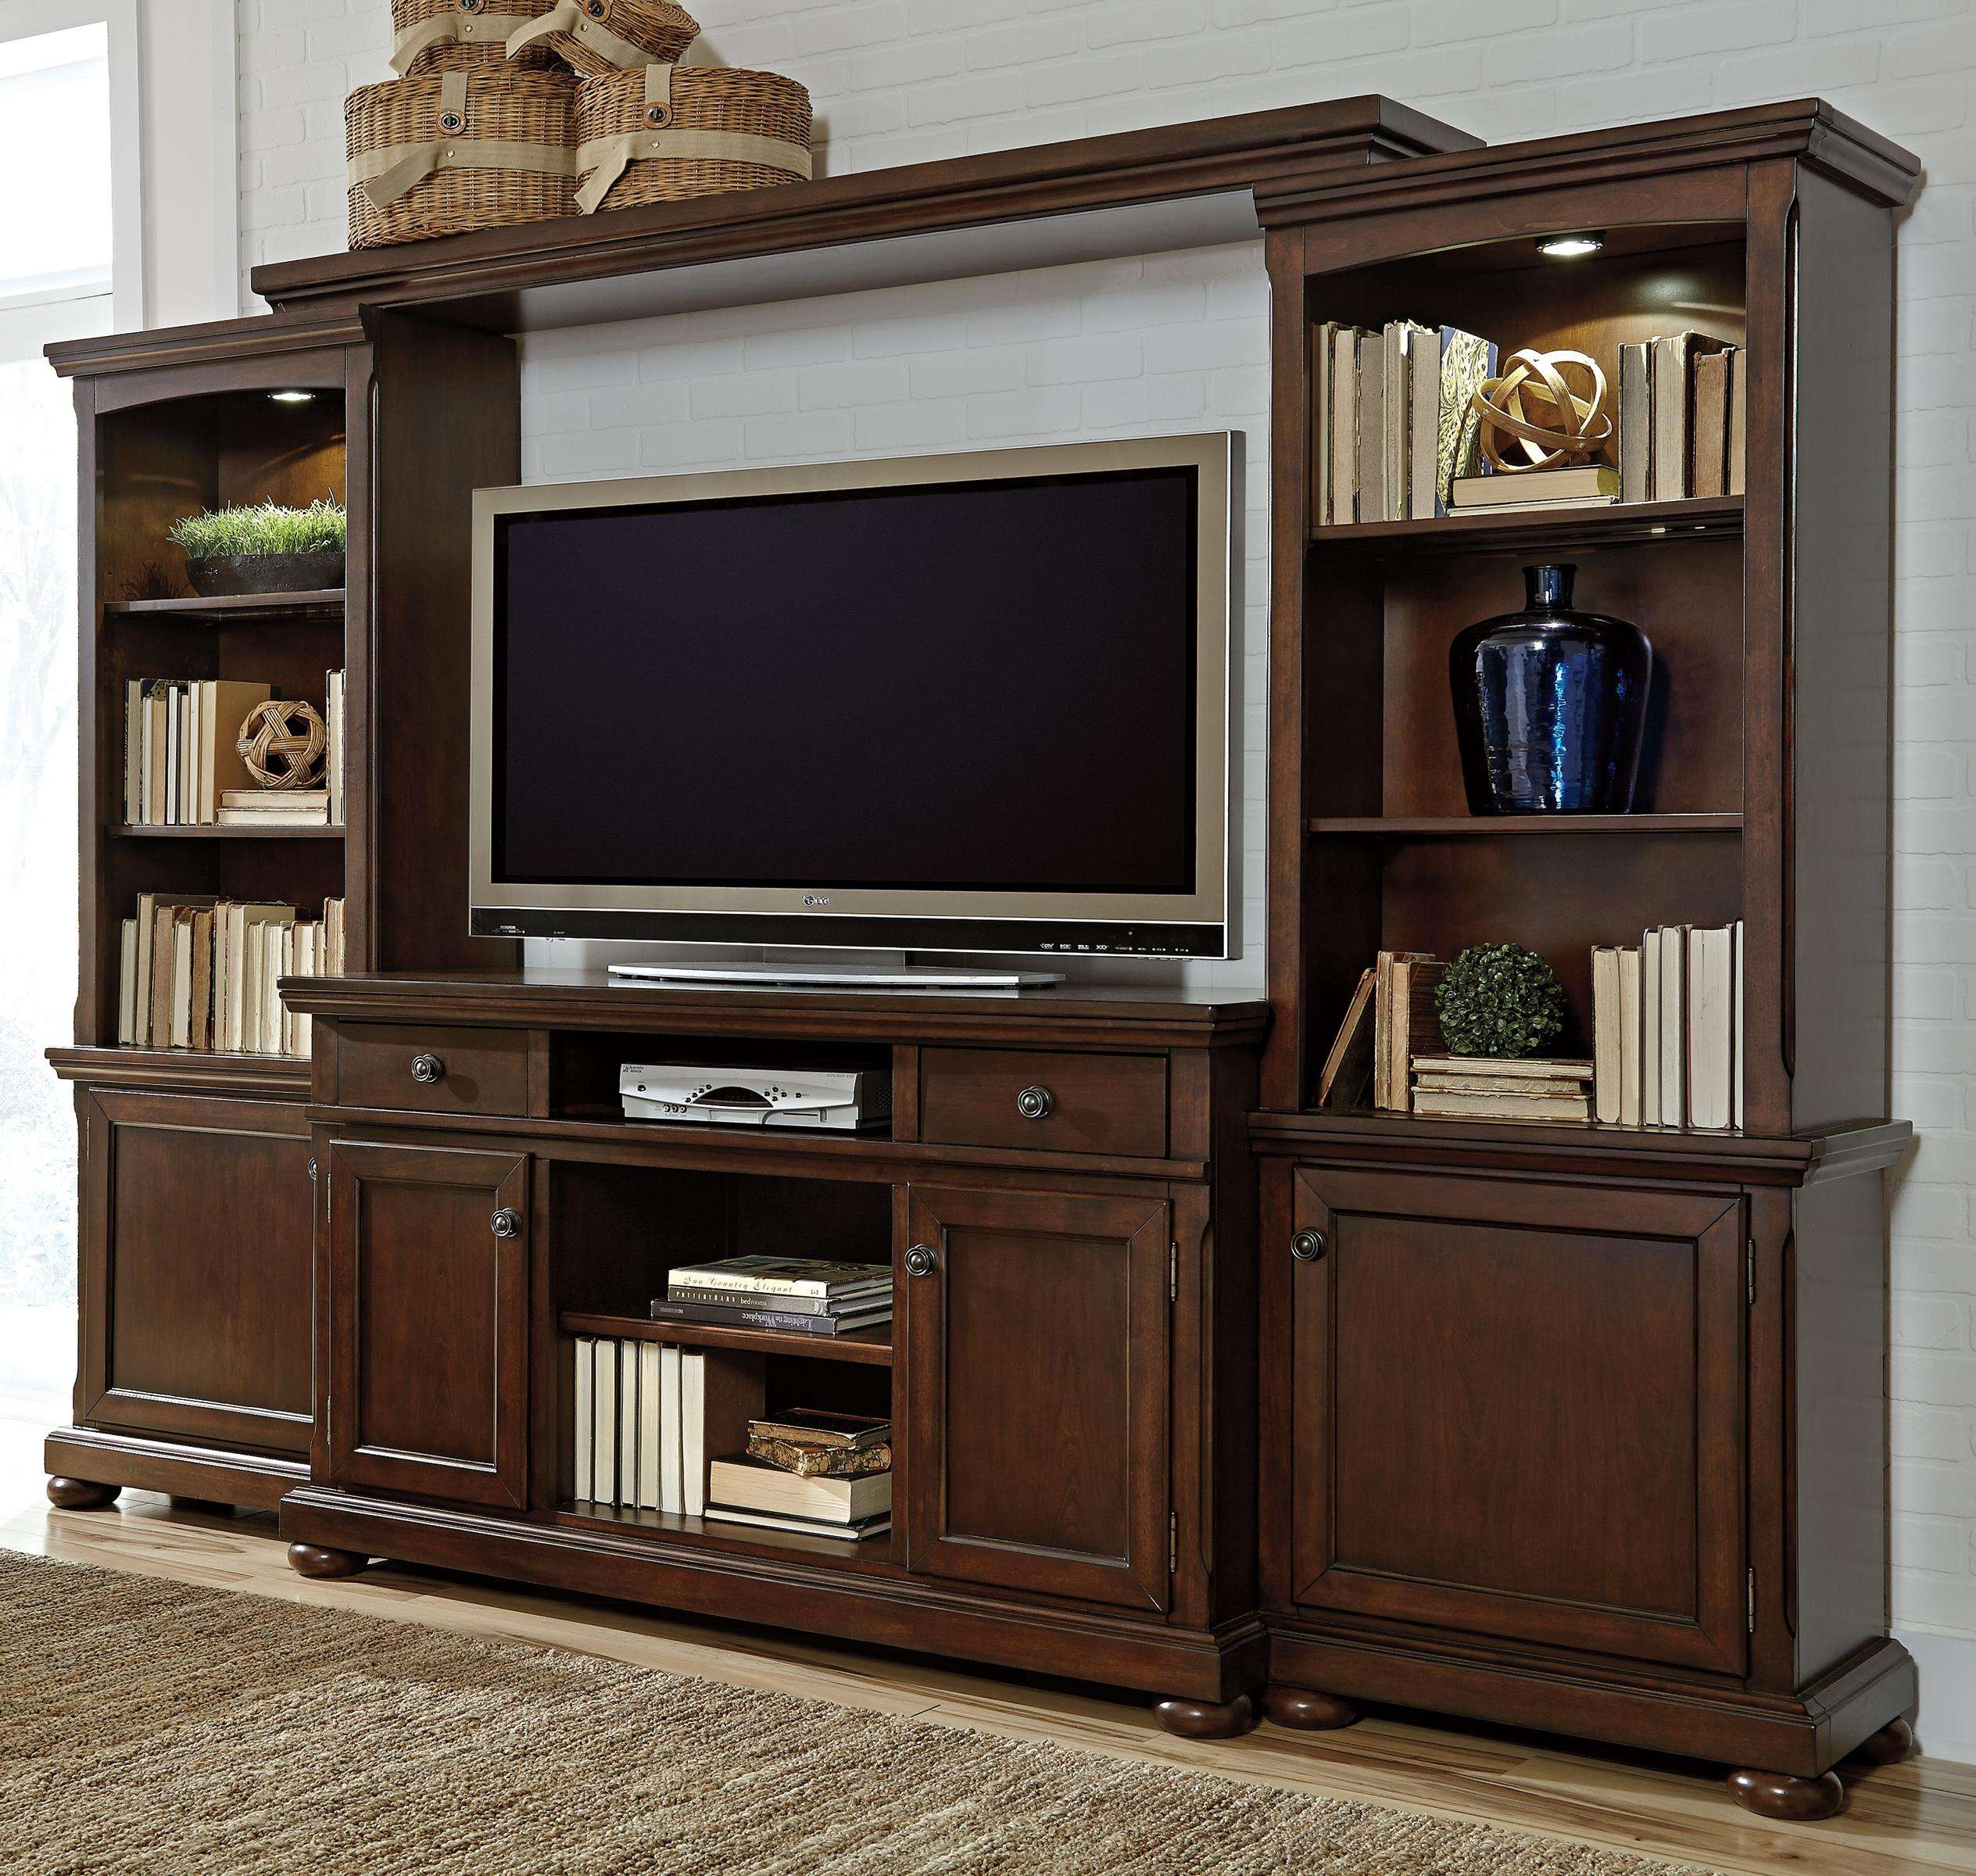 Large Tv Cabinets In Most Popular Large Tv Cabinets Large Tv Cabinets Drinks Cabinet Bedside Cabinets (Gallery 3 of 20)